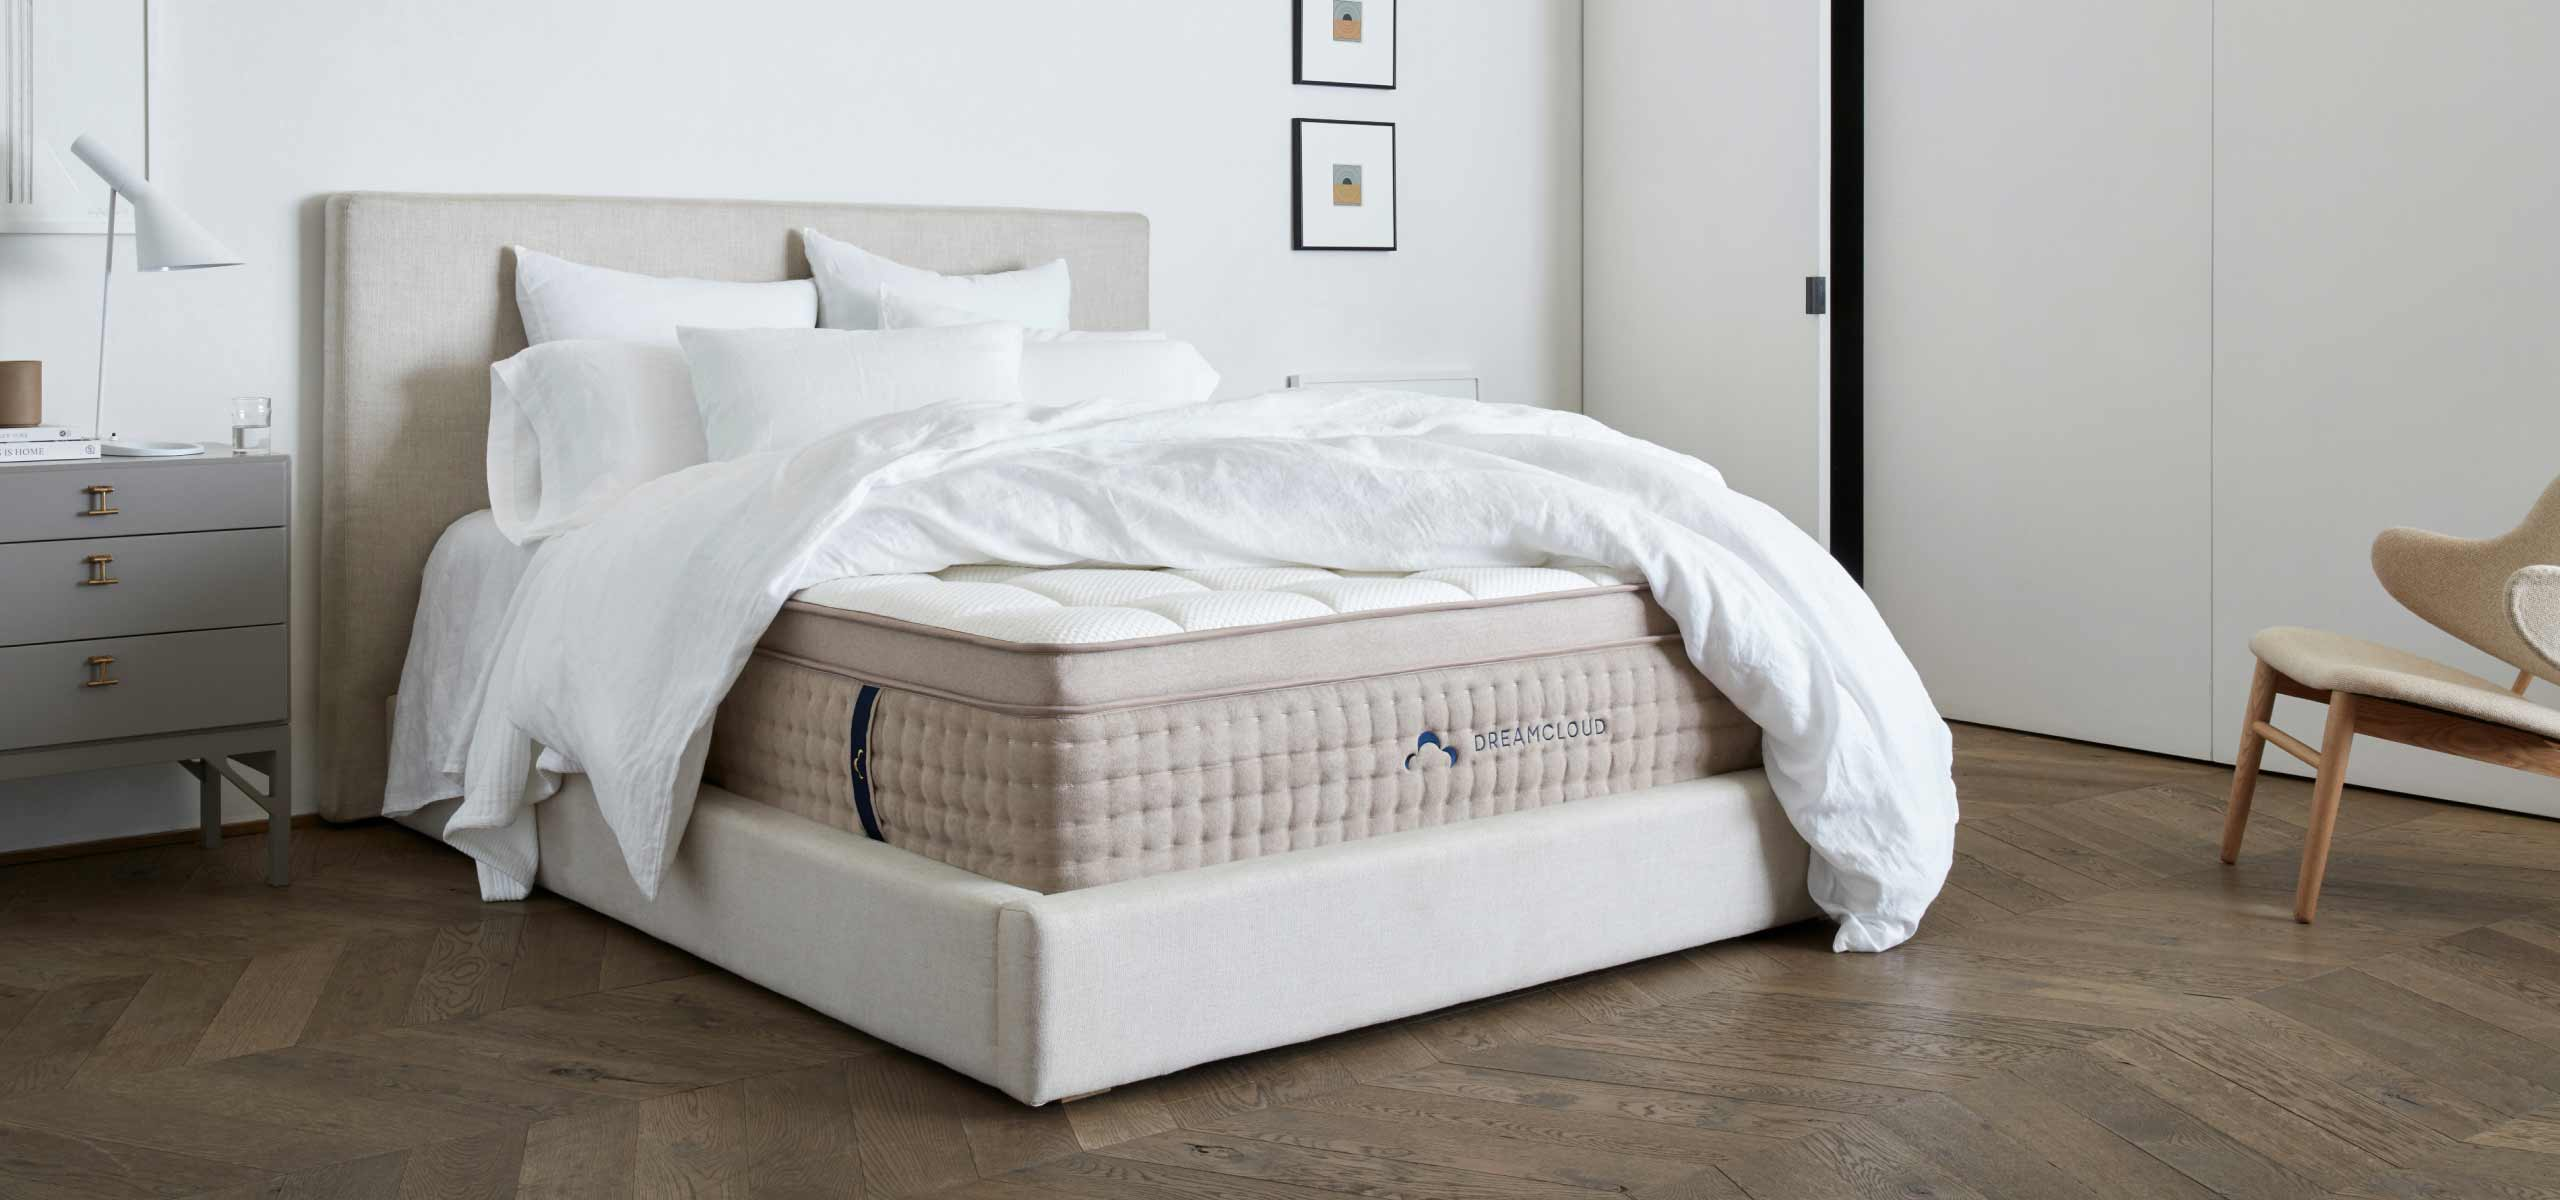 I Felt Instant Results The First Night Sleeping On This Mattress Am A Dreamcloud Believer For Life Josh H